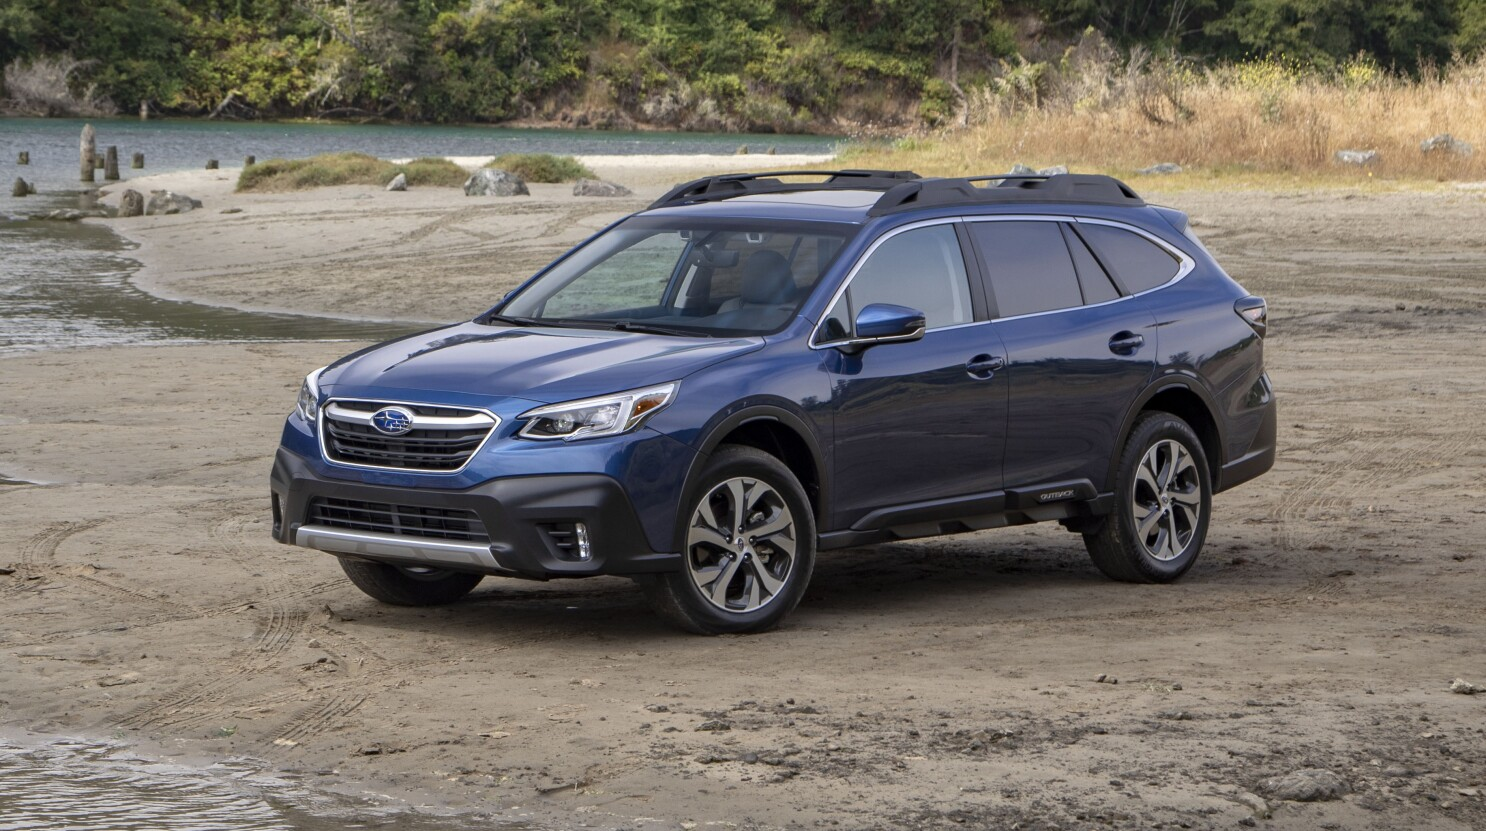 redesigned outback gives subaru something interior to talk about the san diego union tribune redesigned outback gives subaru